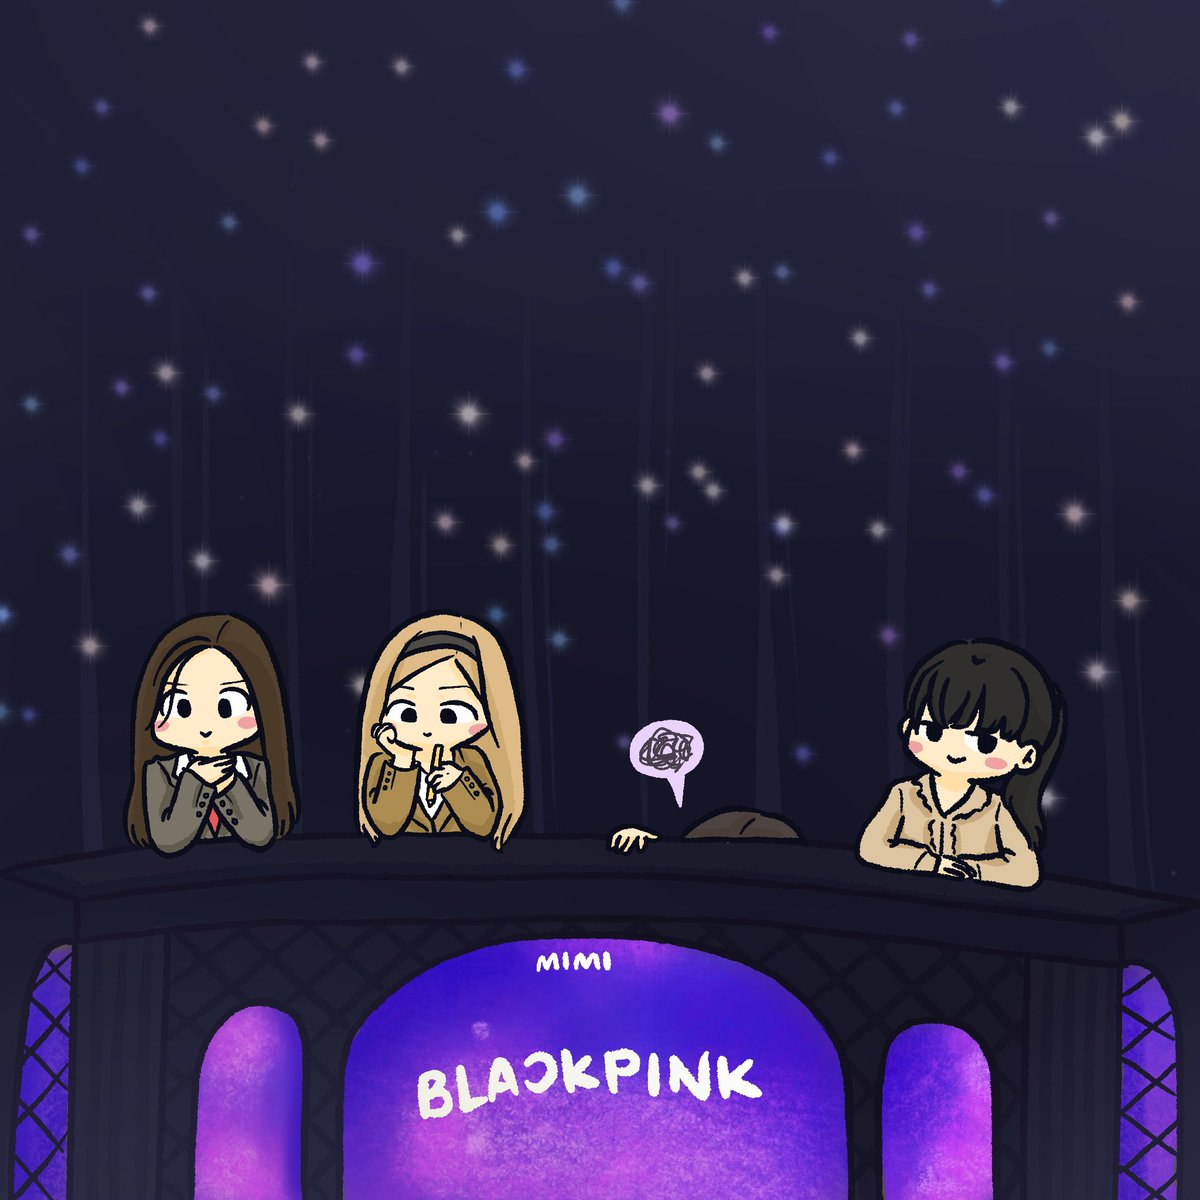 jennie behind the pinks    #BLACKPINK @ygofficialblink<br>http://pic.twitter.com/7IvyVYucQG